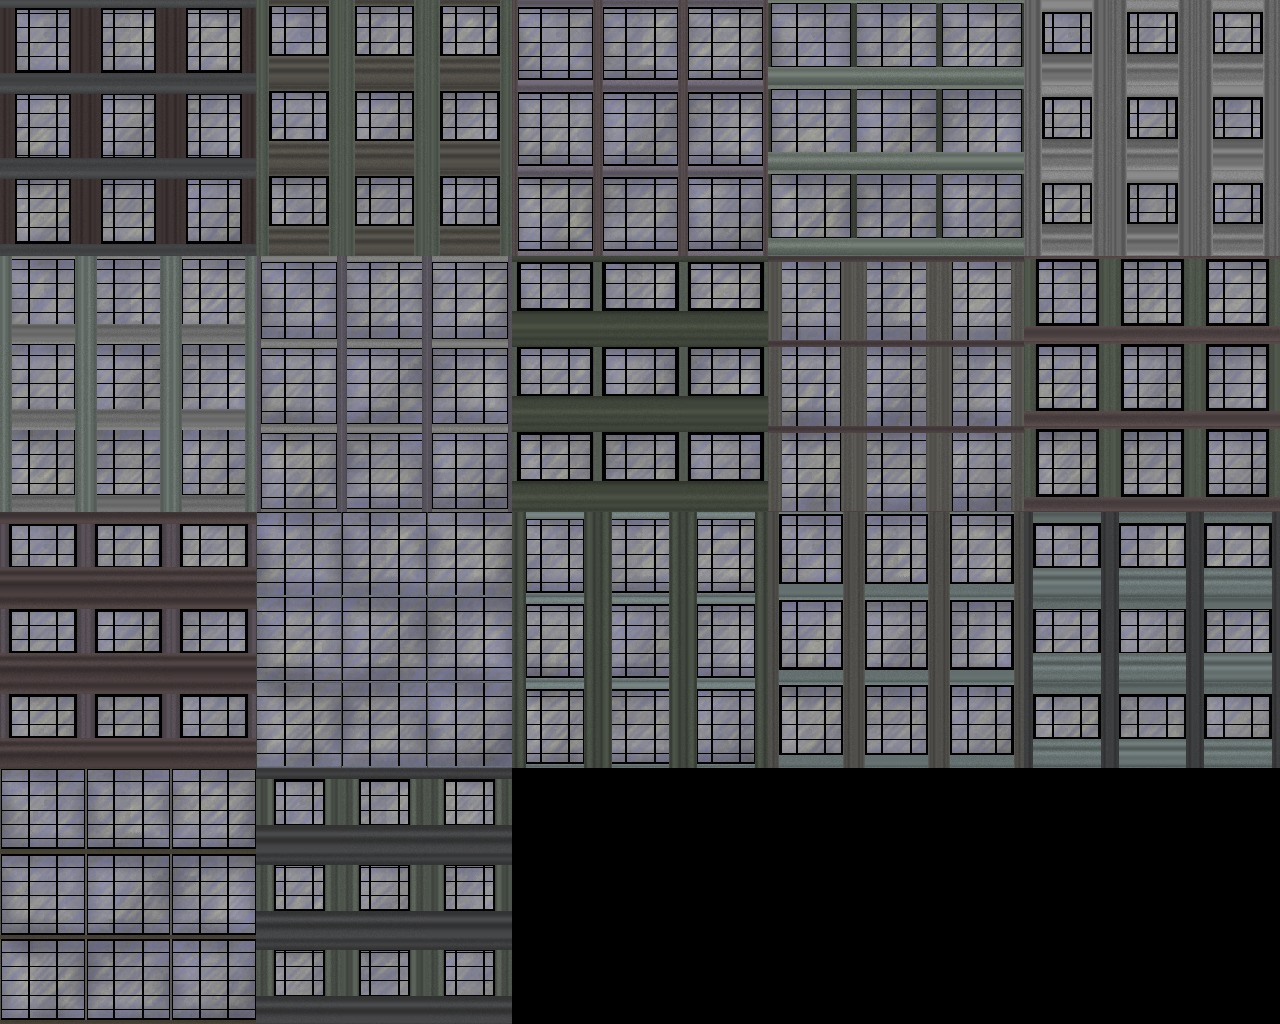 city building textures - photo #33